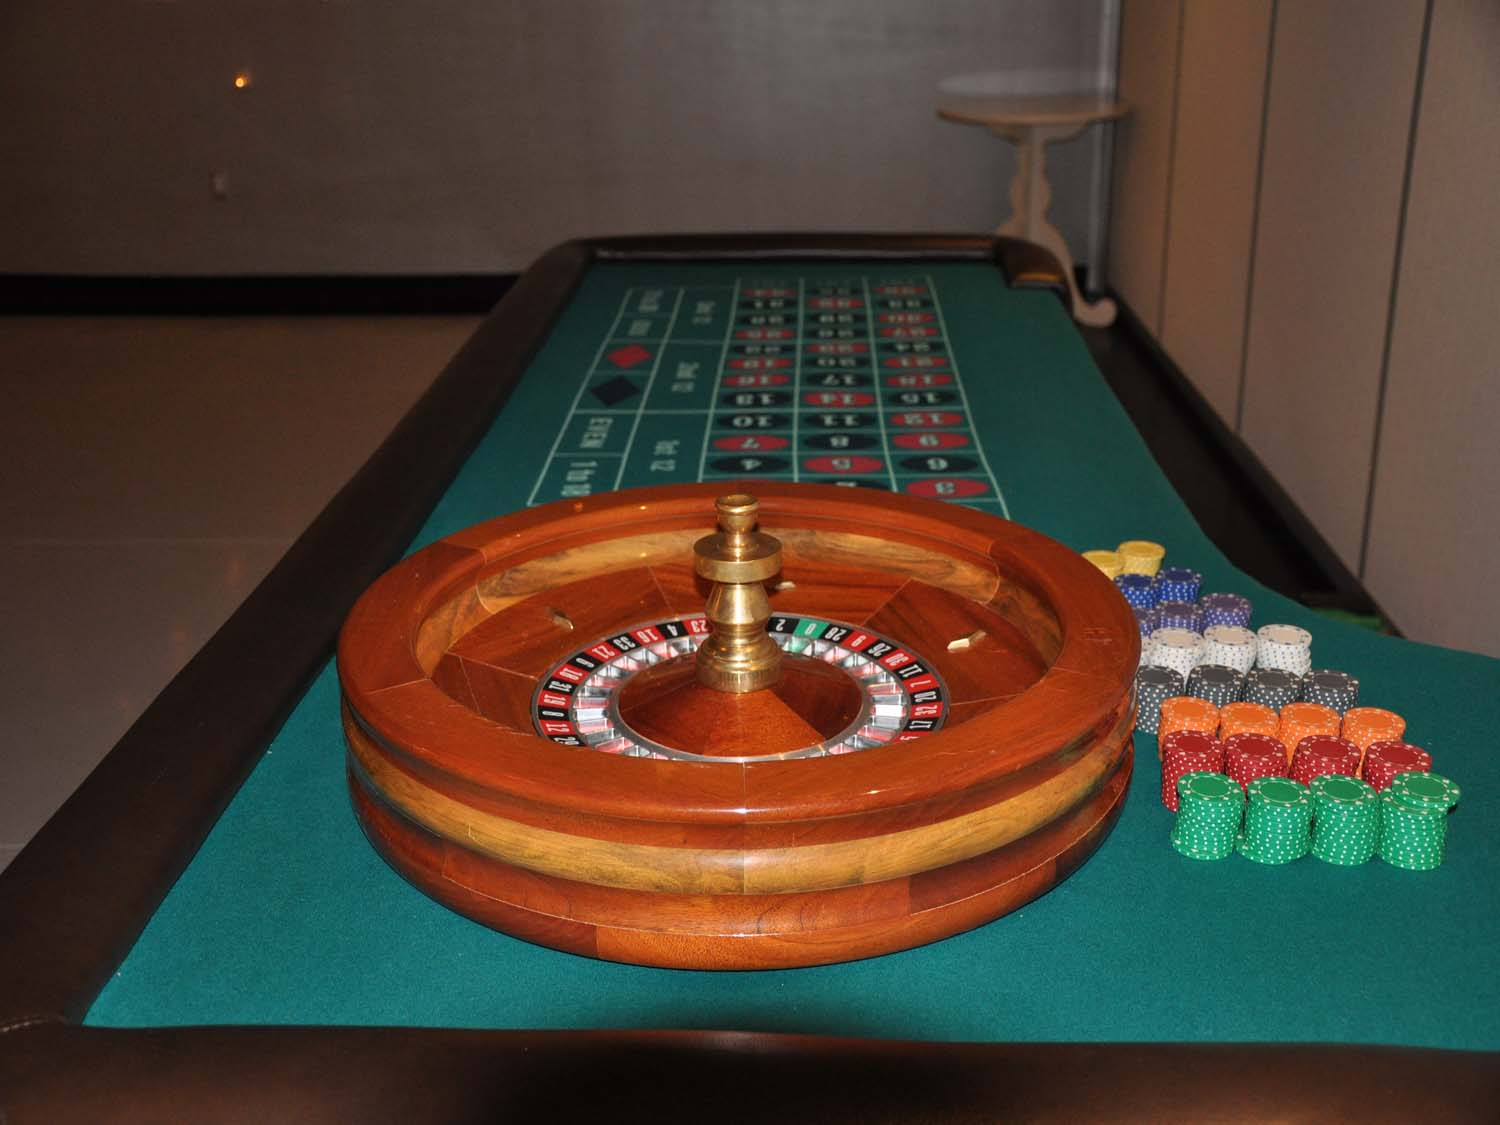 Roulette is one of the most popularcasino party games for casino night events in Tucson, AZ